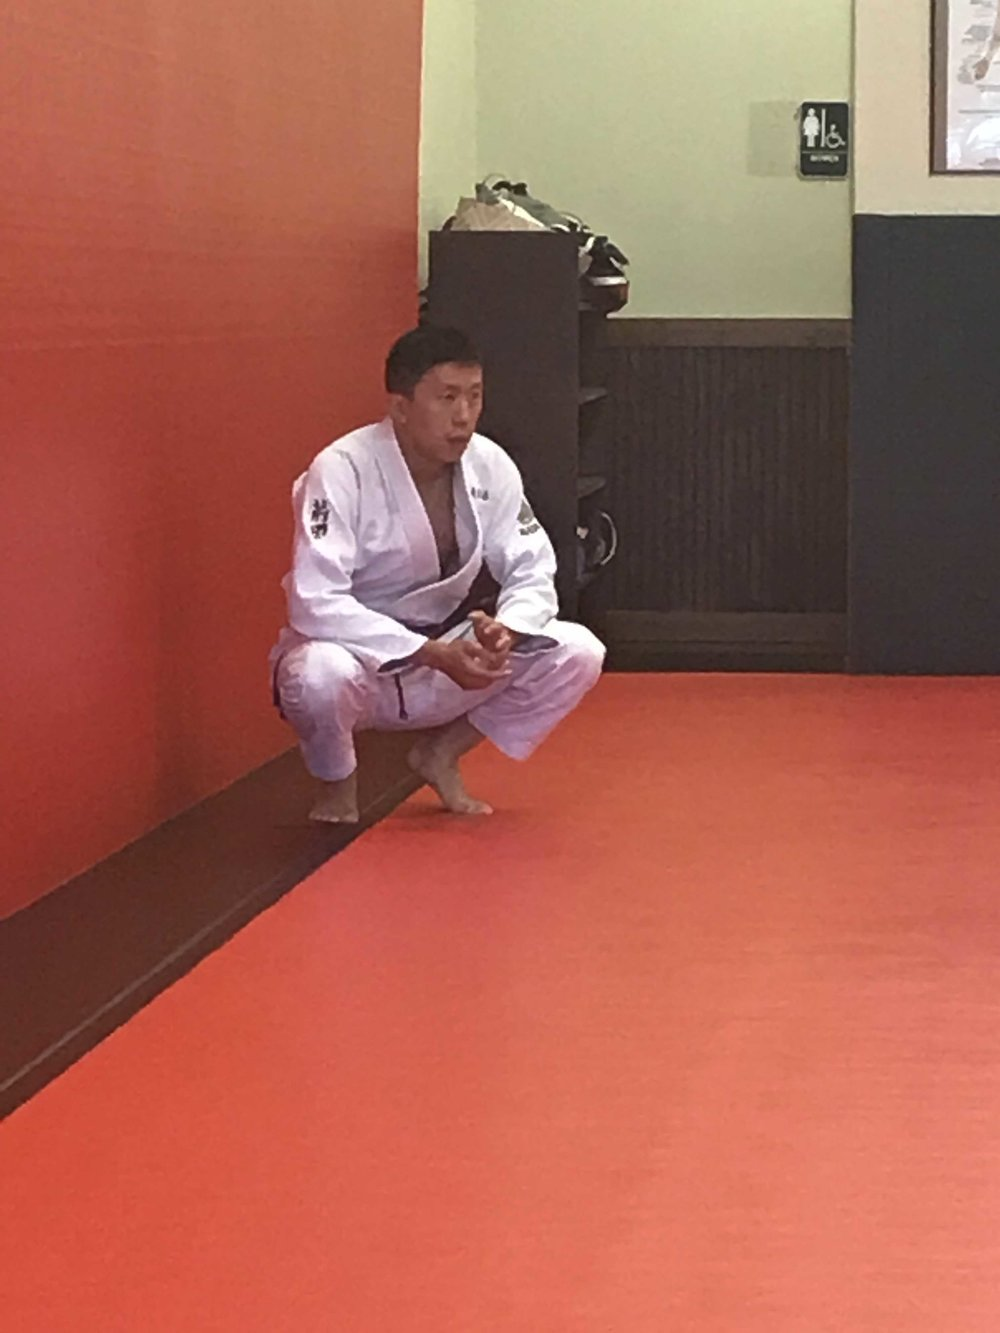 Addi Wei, one of our purple belts under Master Murgel...contemplating life and jiu jitsu techniques.  ;-)